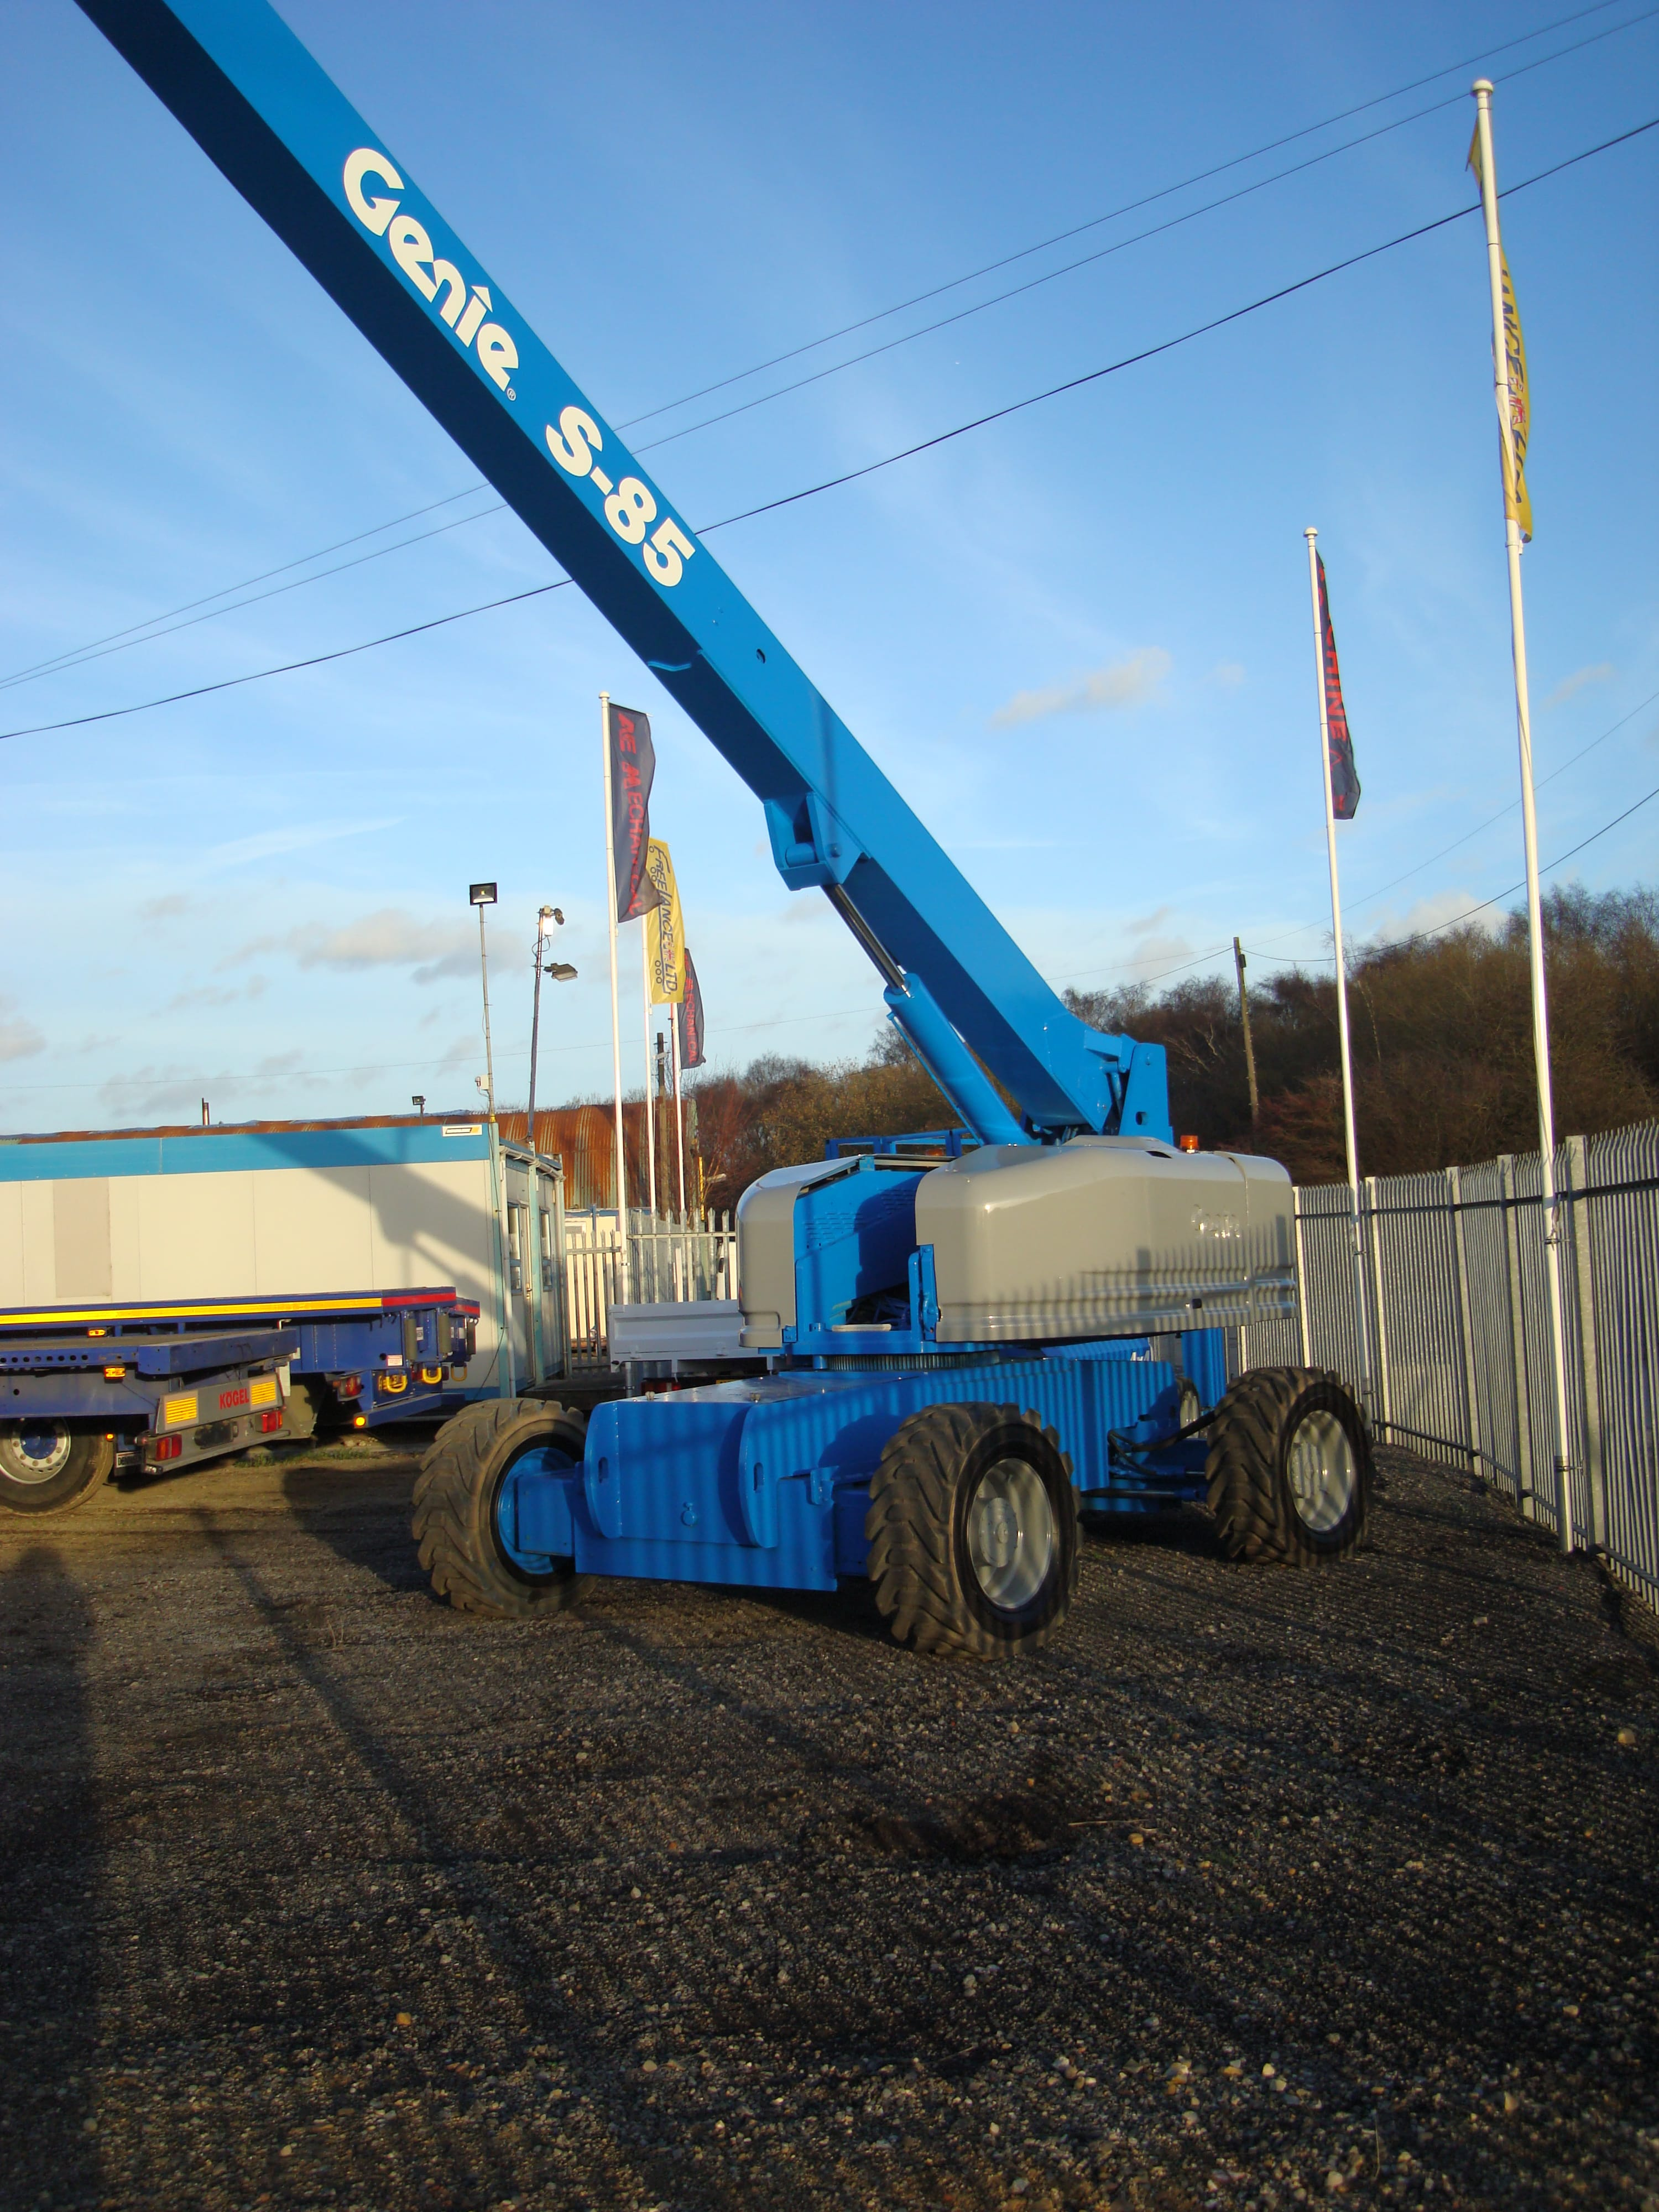 Fully extended Genie S85-2 boom crane